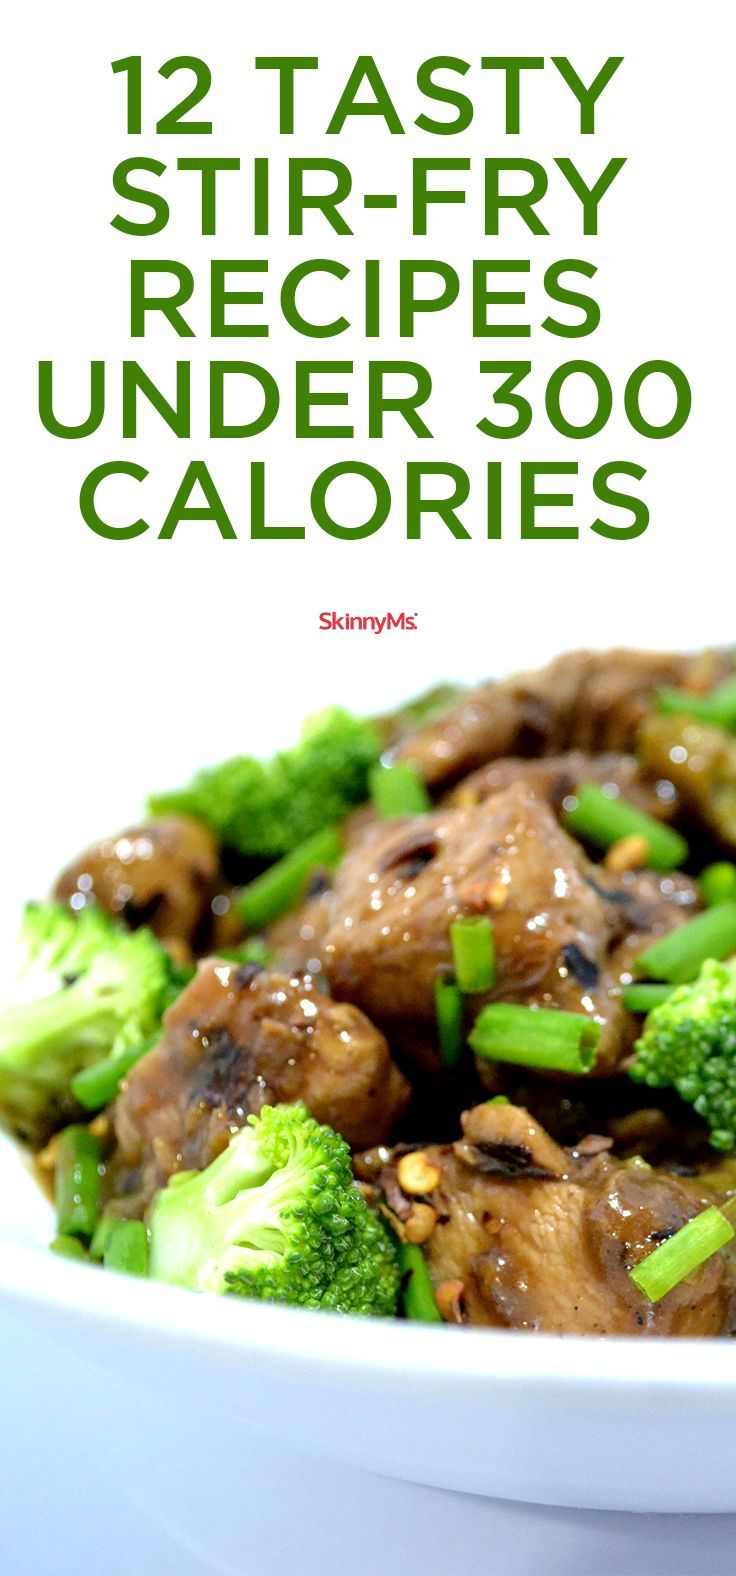 Best 25 under 300 calories ideas on pinterest under 300 calorie 12 tasty stir fry recipes under 300 calories clean eating meal planhealthy forumfinder Gallery